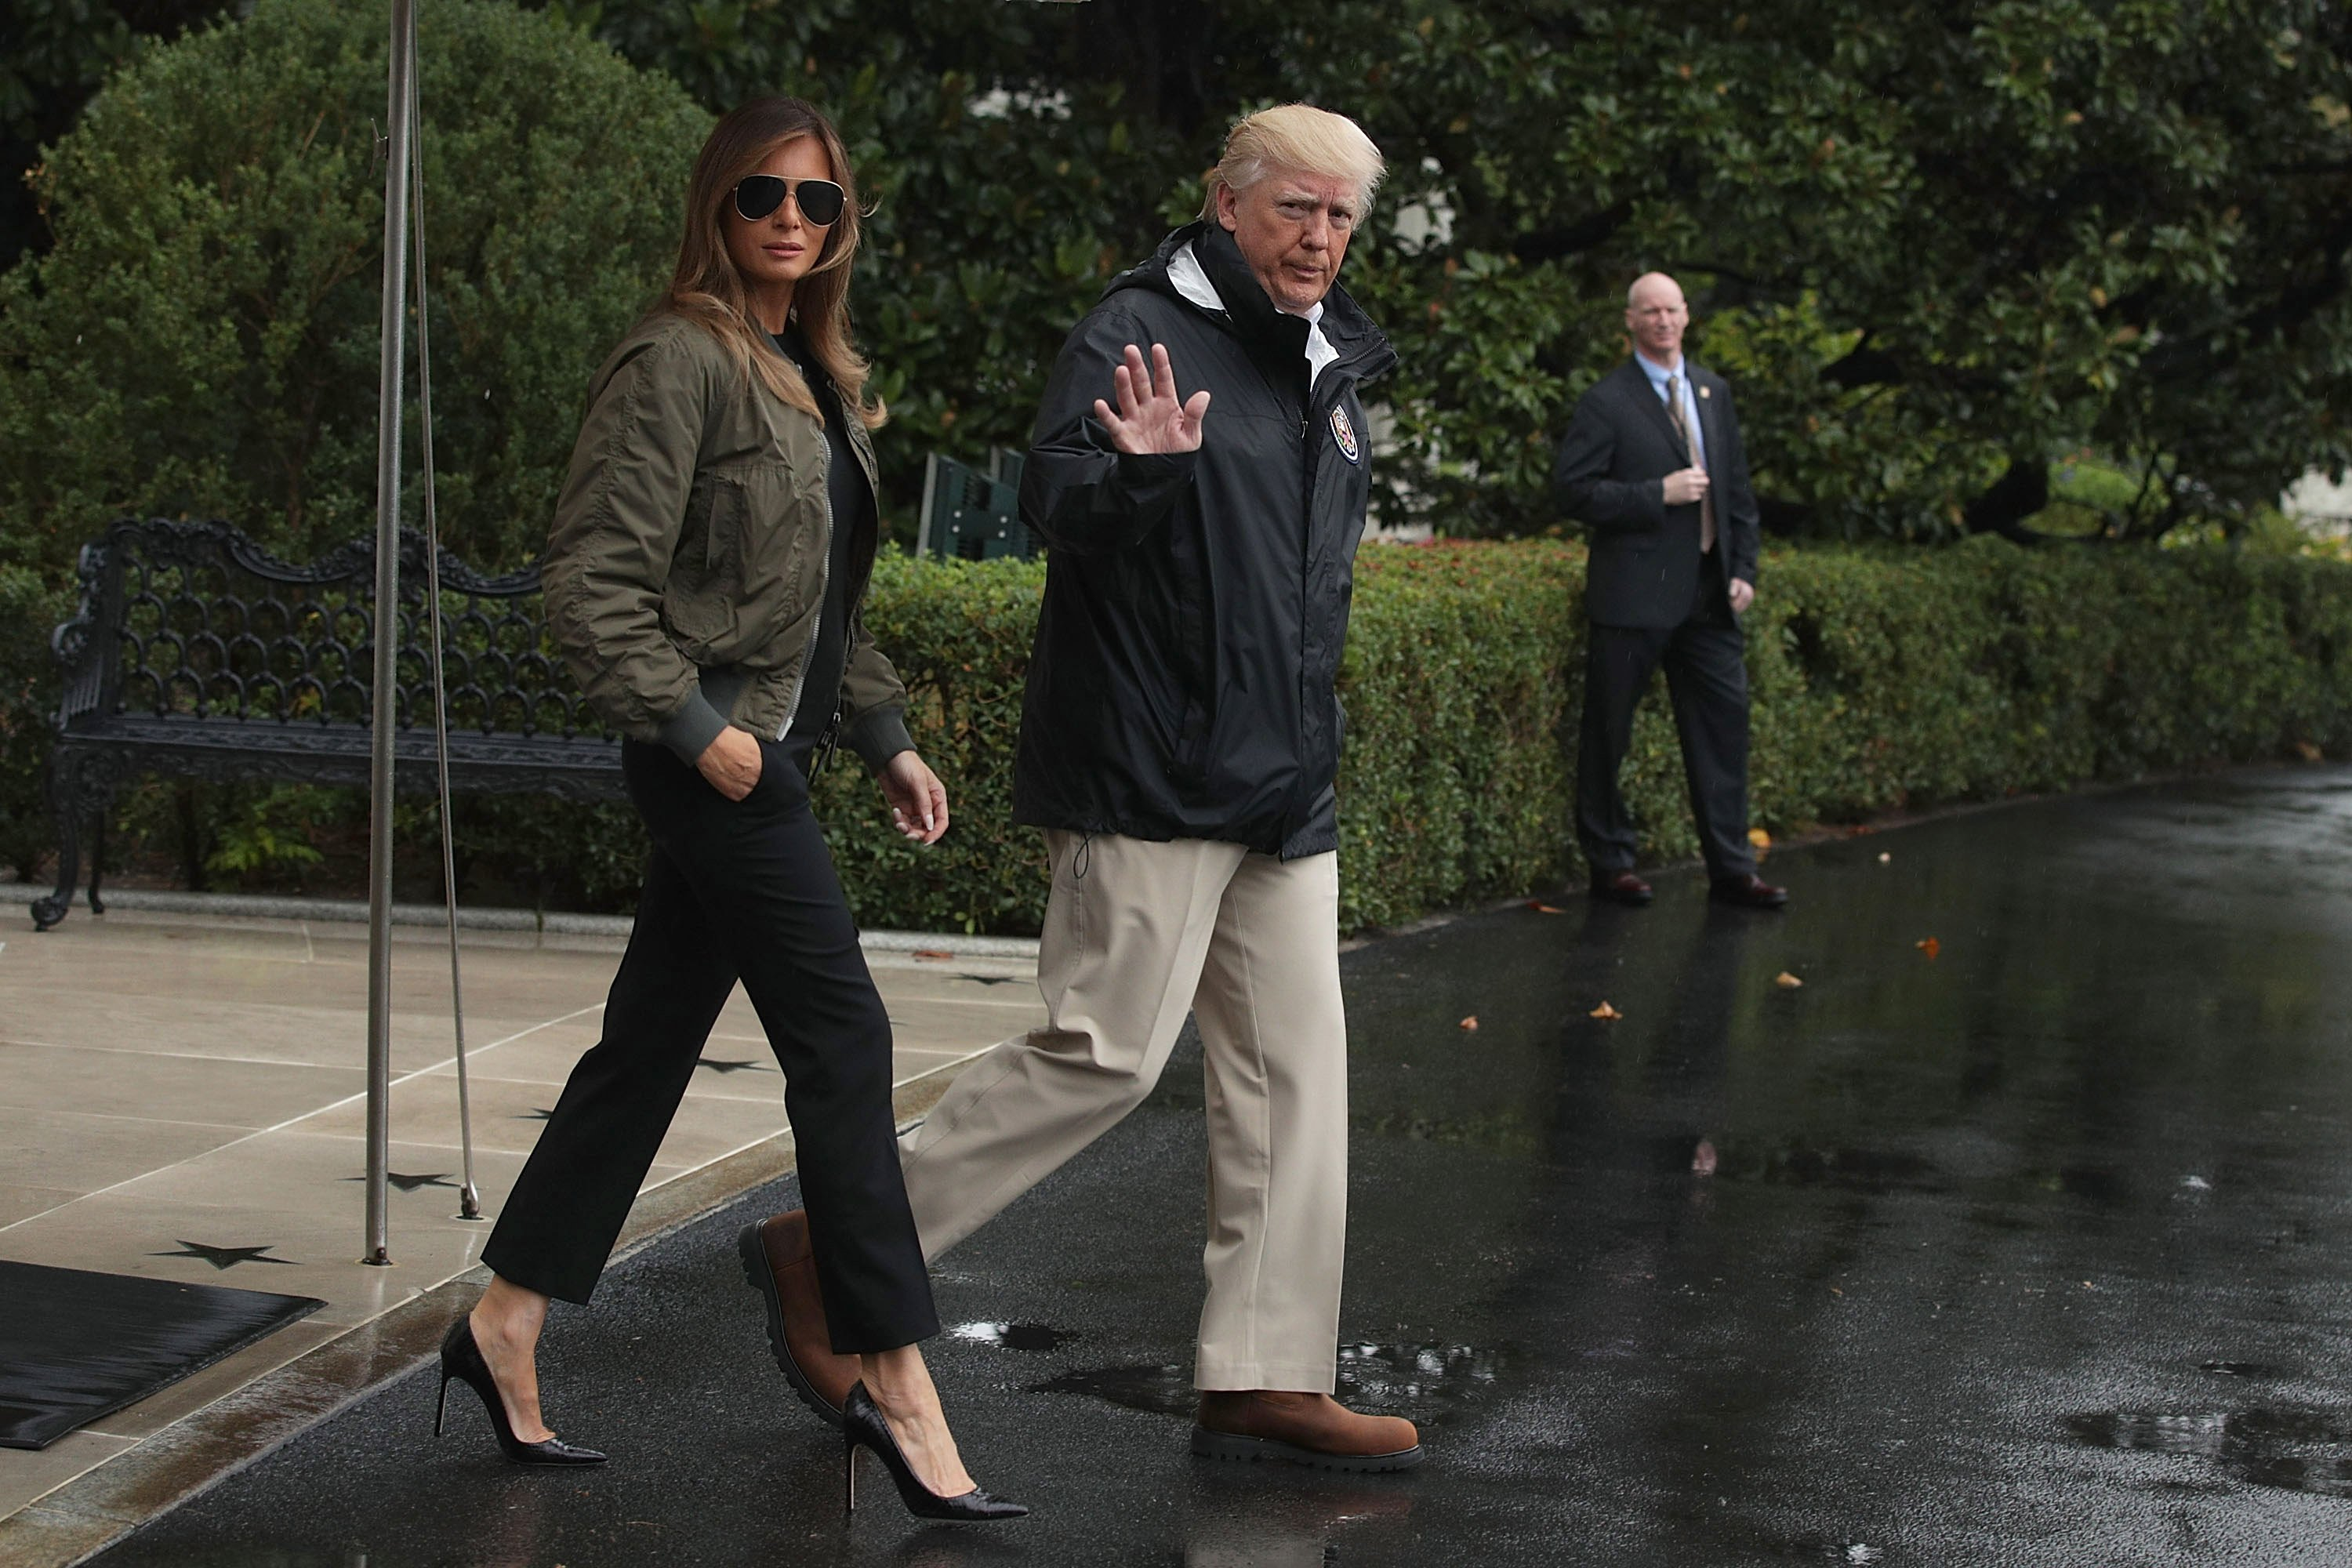 Donald and Melania Trump on their way to visit victims of Hurricane Harvey | Photo: Getty Images